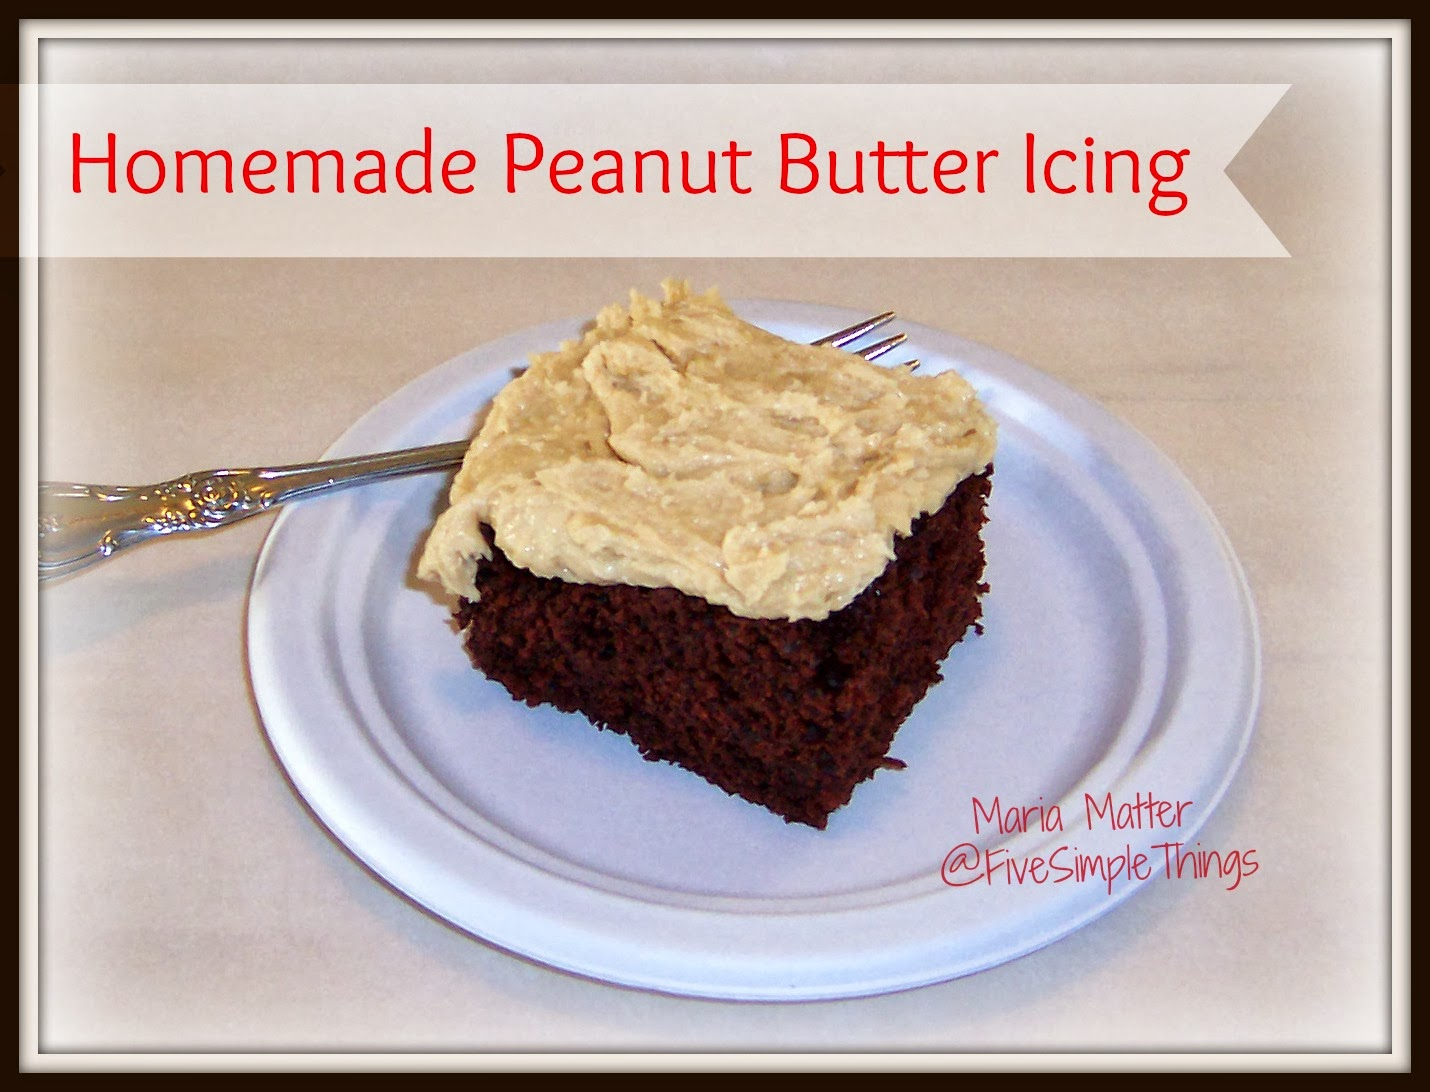 Five Simple Things: Homemade Peanut Butter Icing